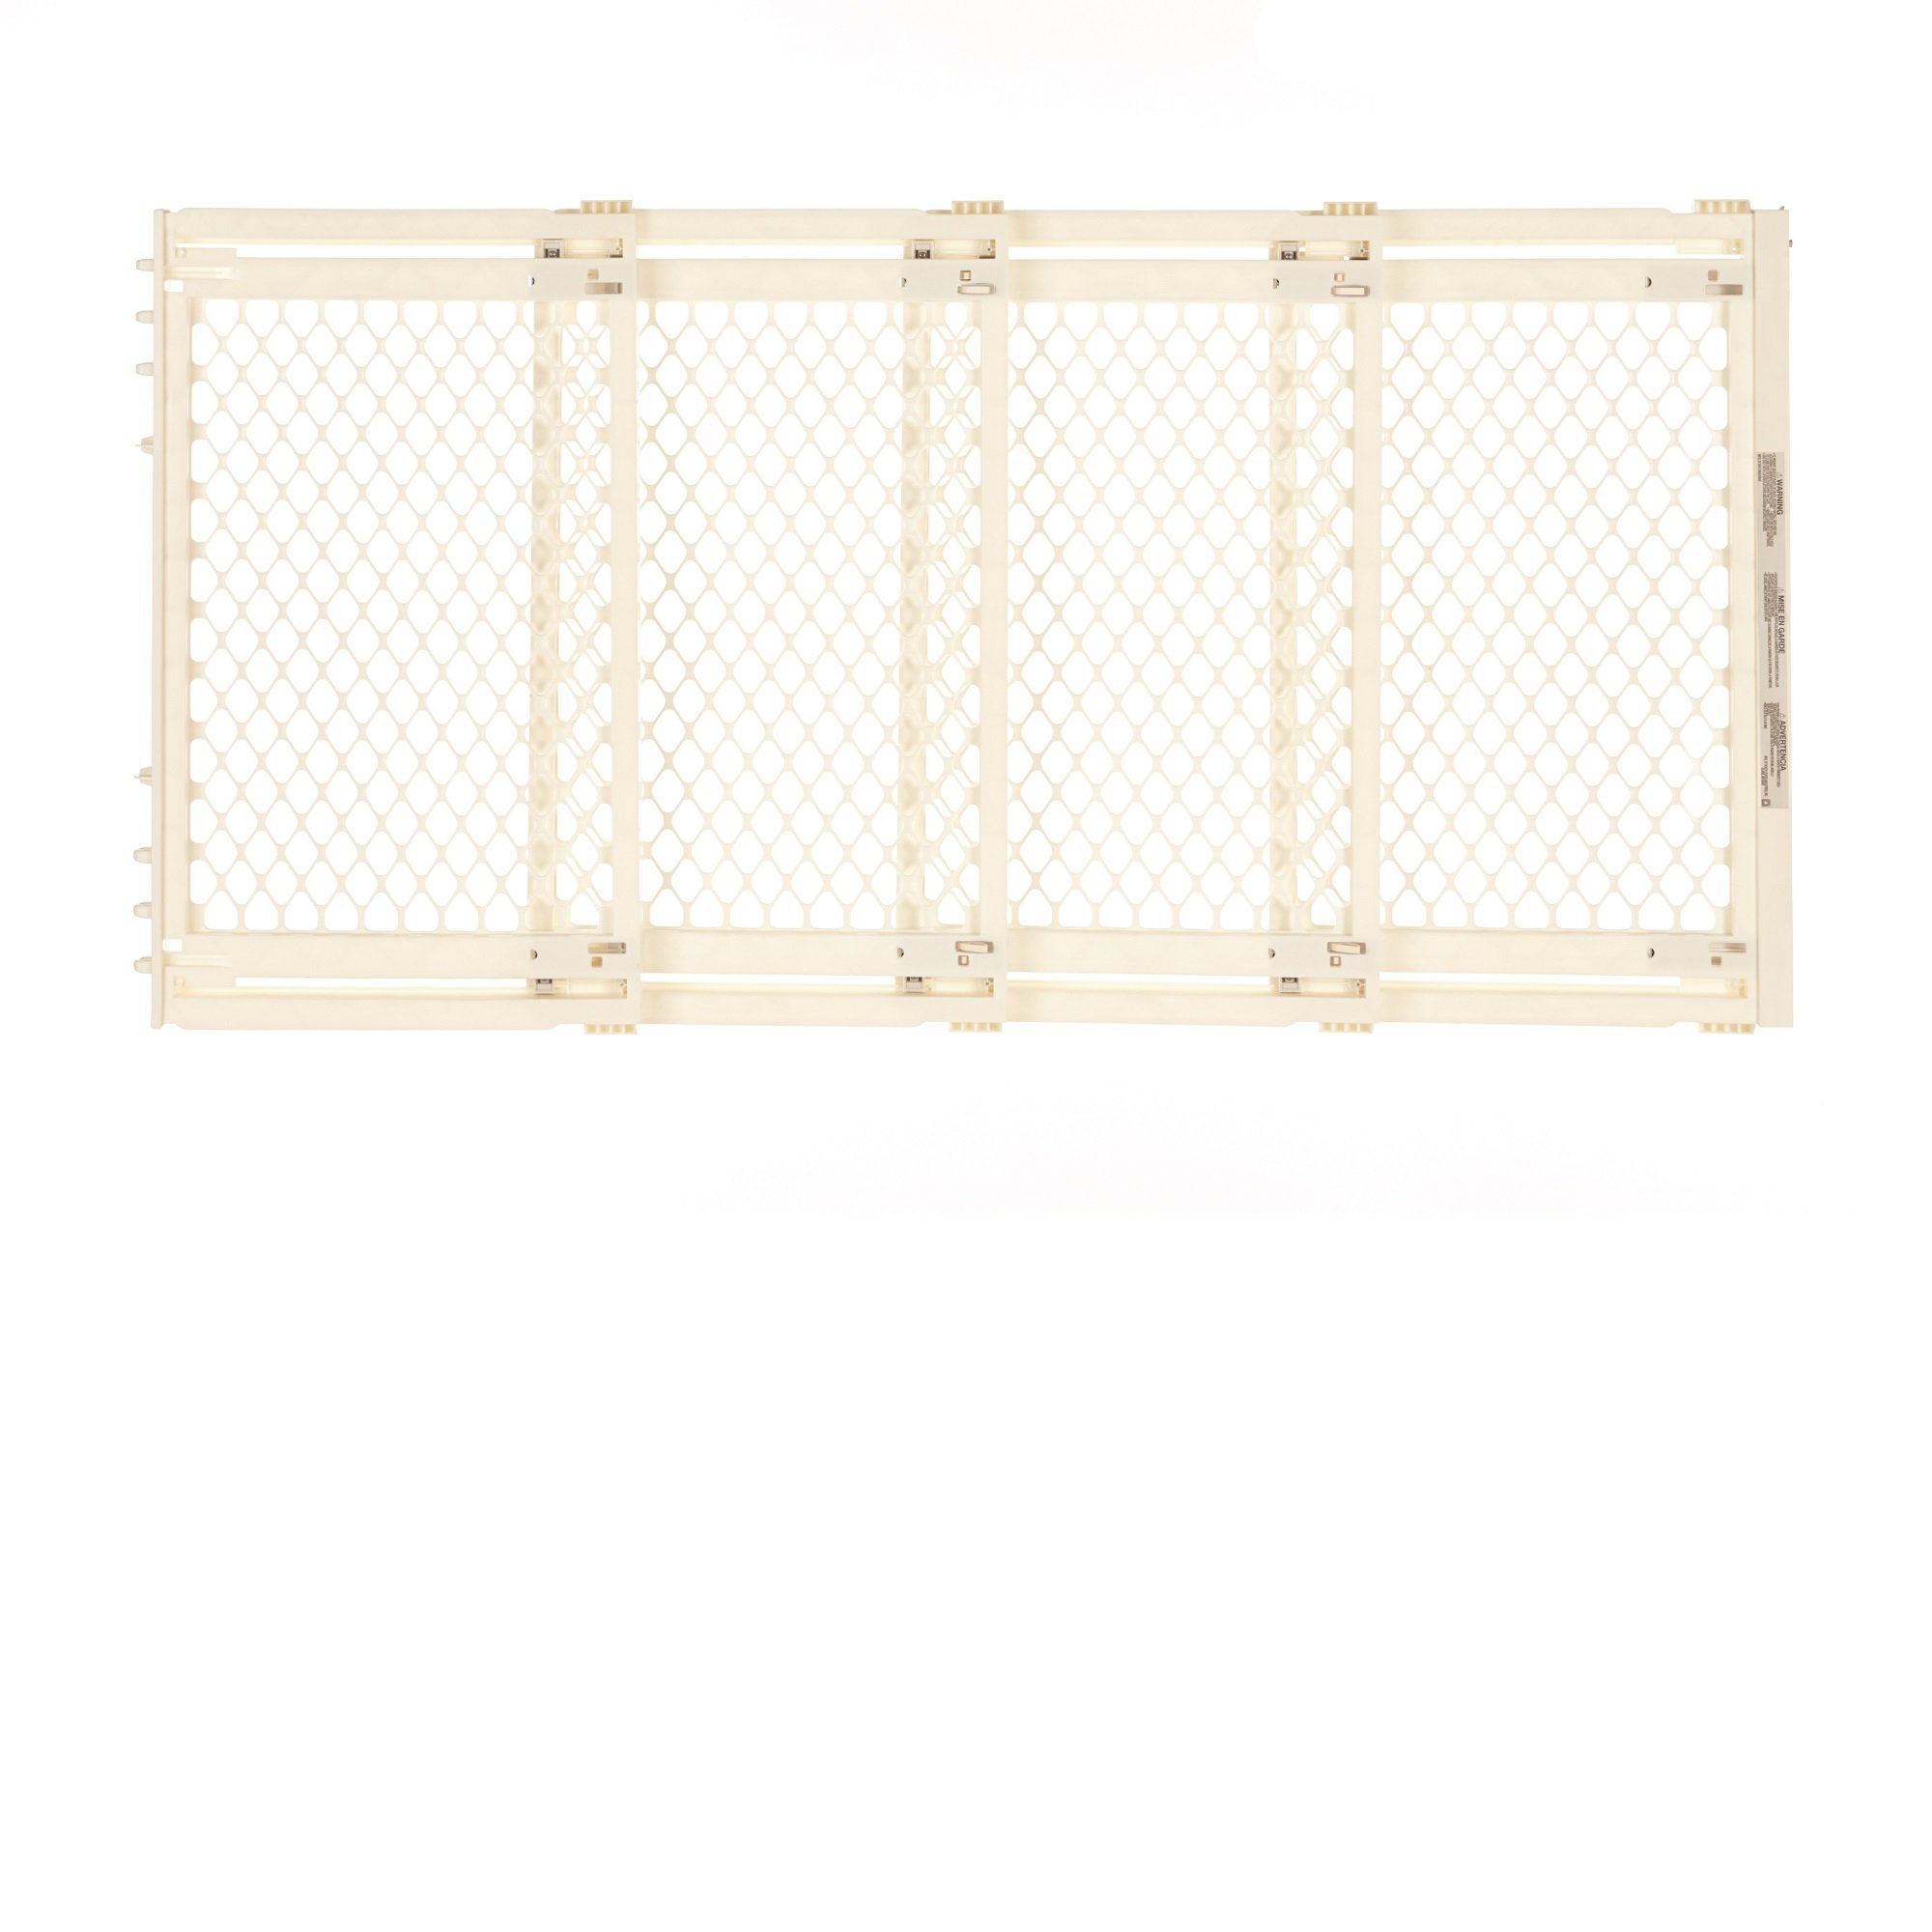 North States Extra Wide Petgate, Ivory, 12.64 LB, White by North States